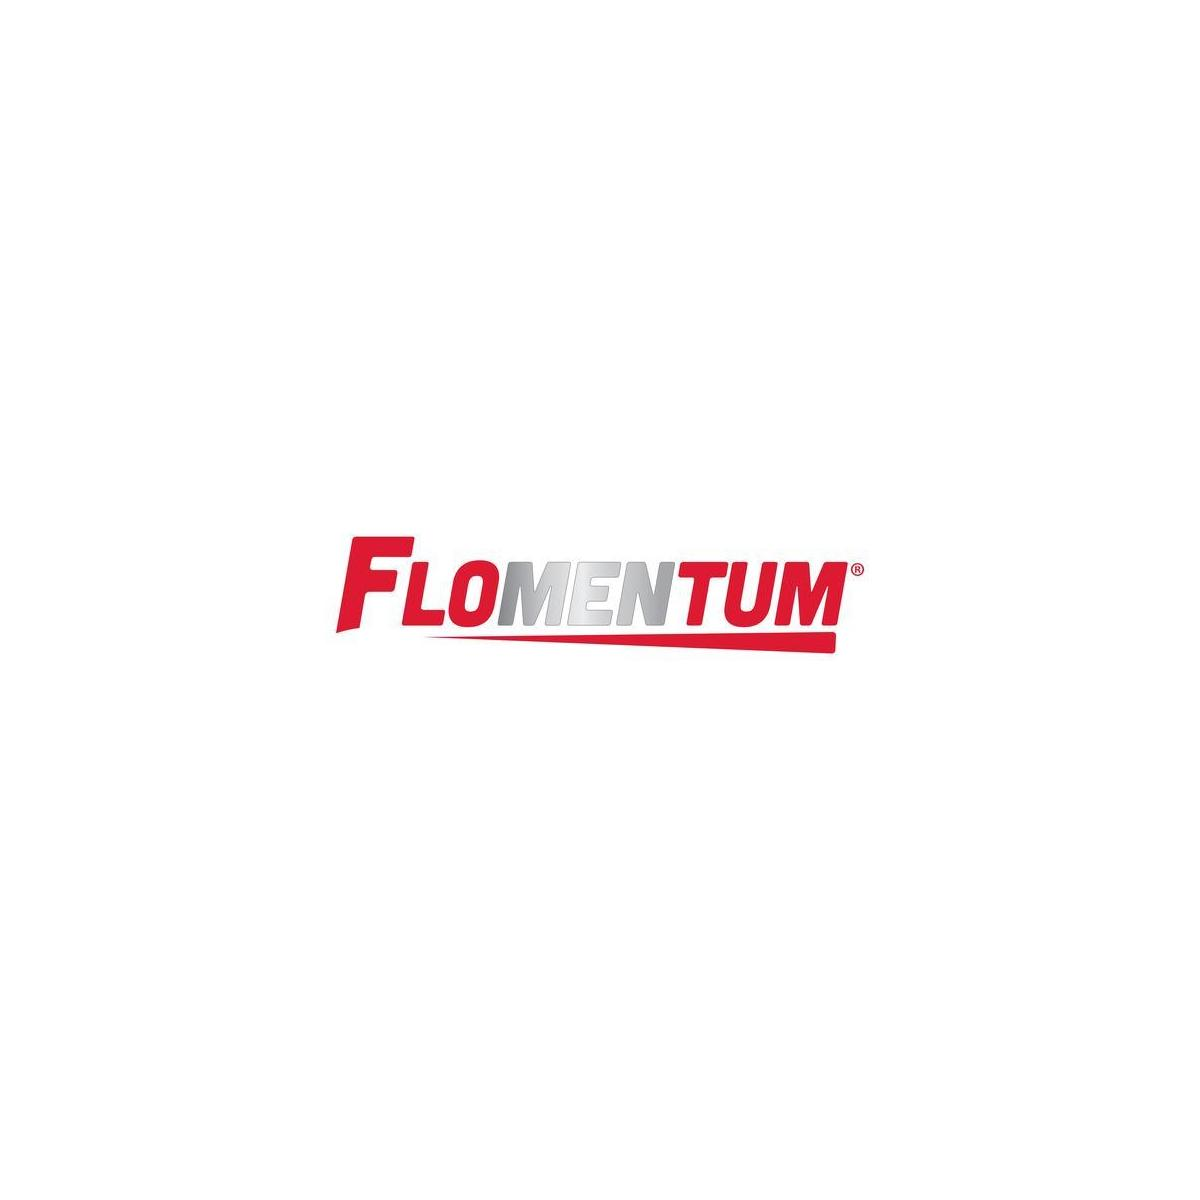 Flomentum™ Men's Health Supplement – Supports Healthy Prostate and Urinary Function – Clinical Strength, USP Verified (30 Count)